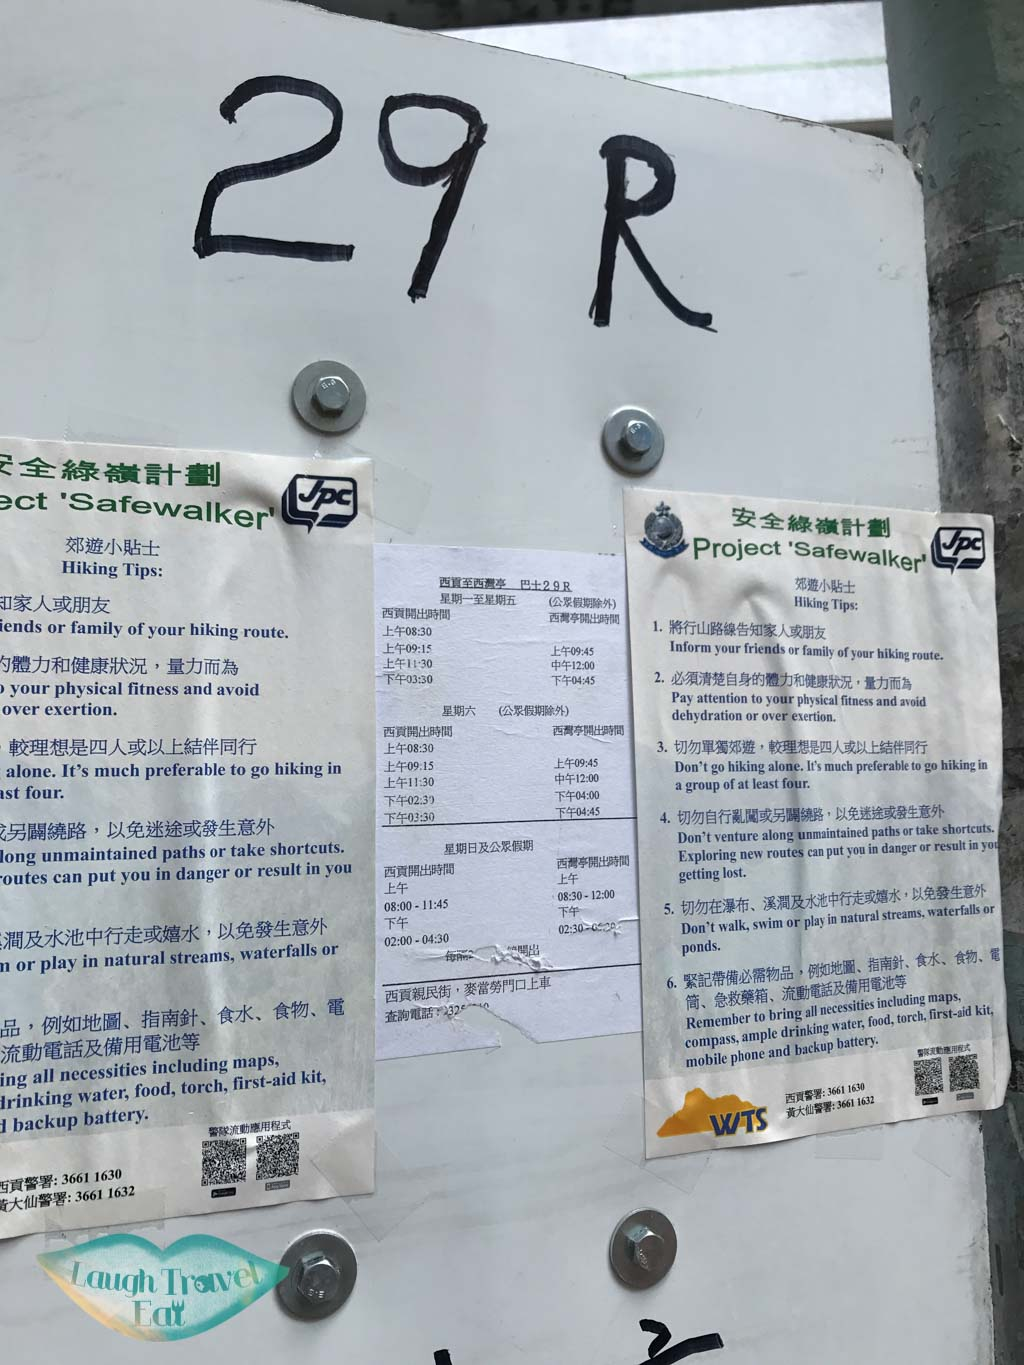 29r-minibus-schedule-sai-kung-Hong-Kong-Laugh-Travel-Eat